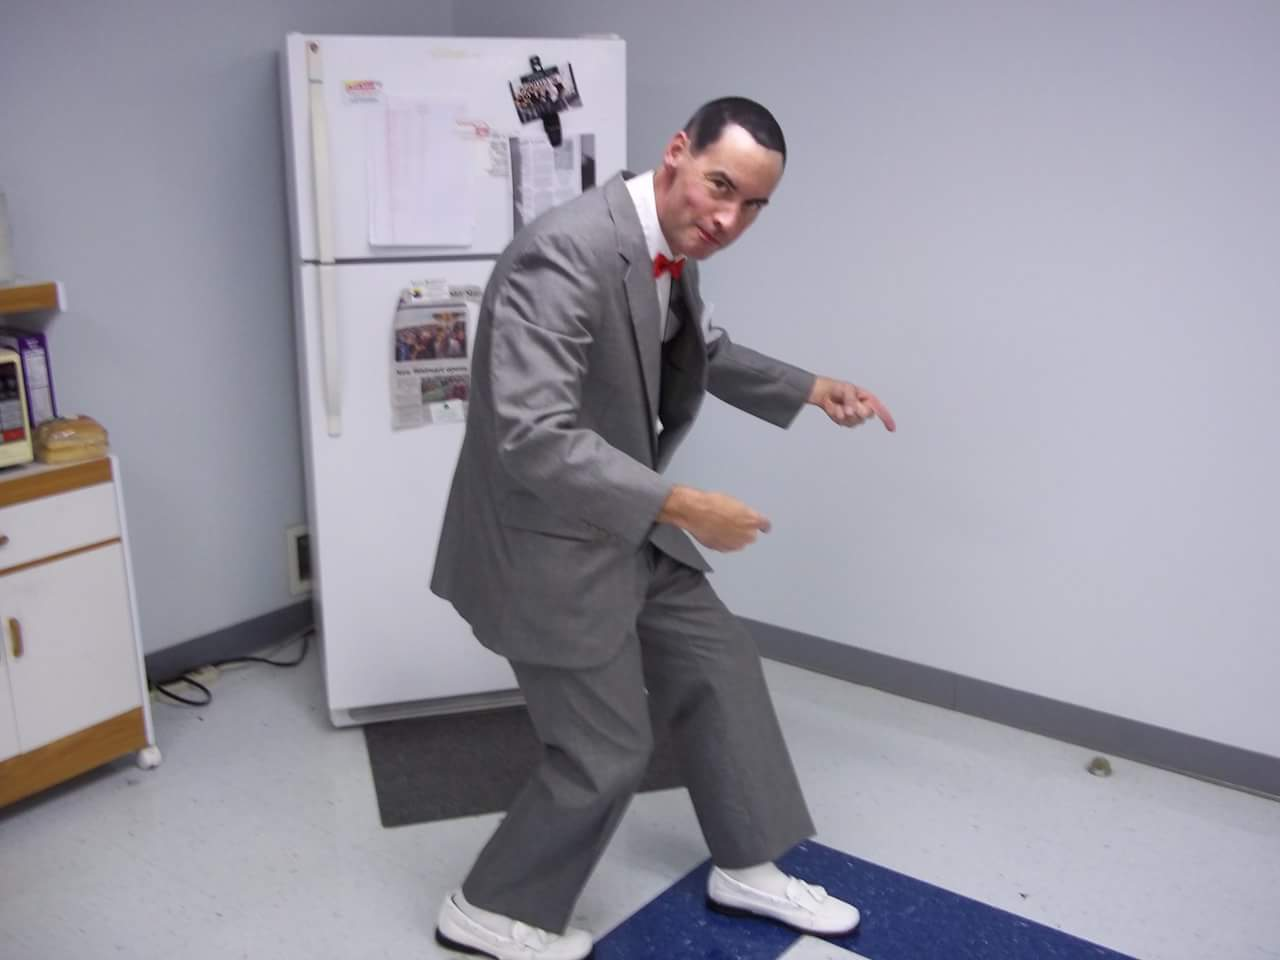 80s Costume Idea: Pee Wee Herman